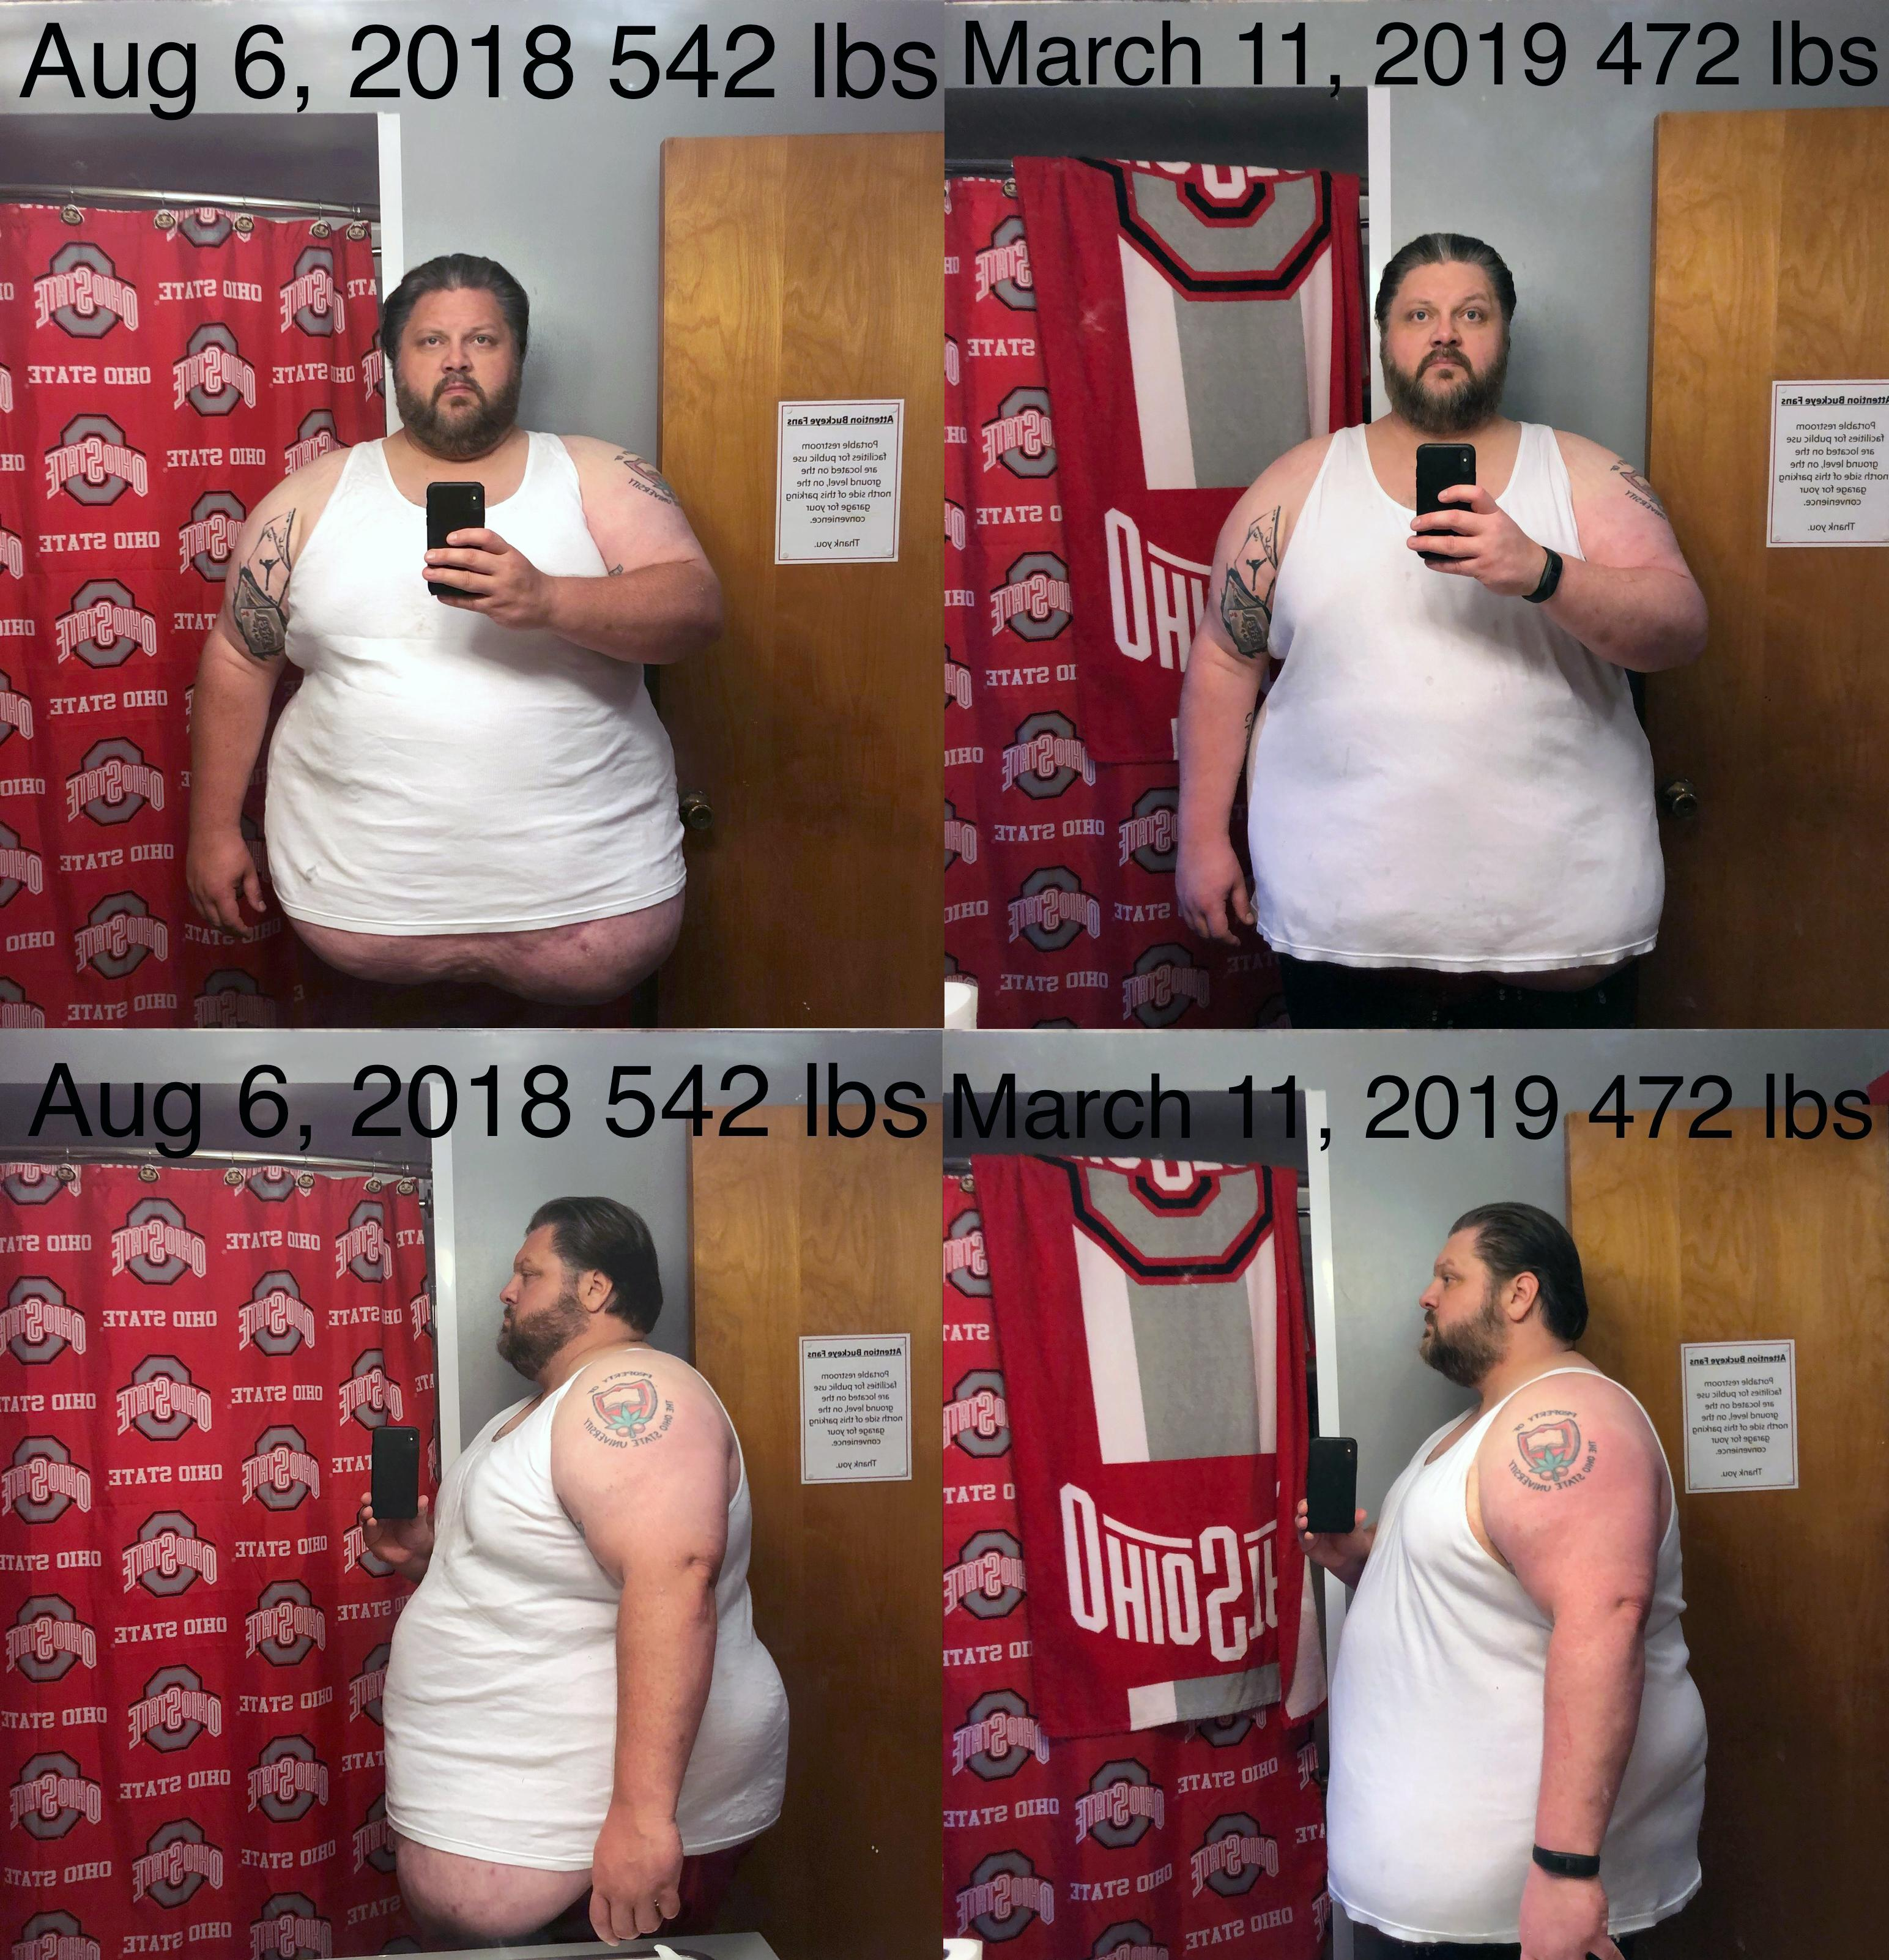 6 foot 1 Male 70 lbs Weight Loss Before and After 542 lbs to 472 lbs